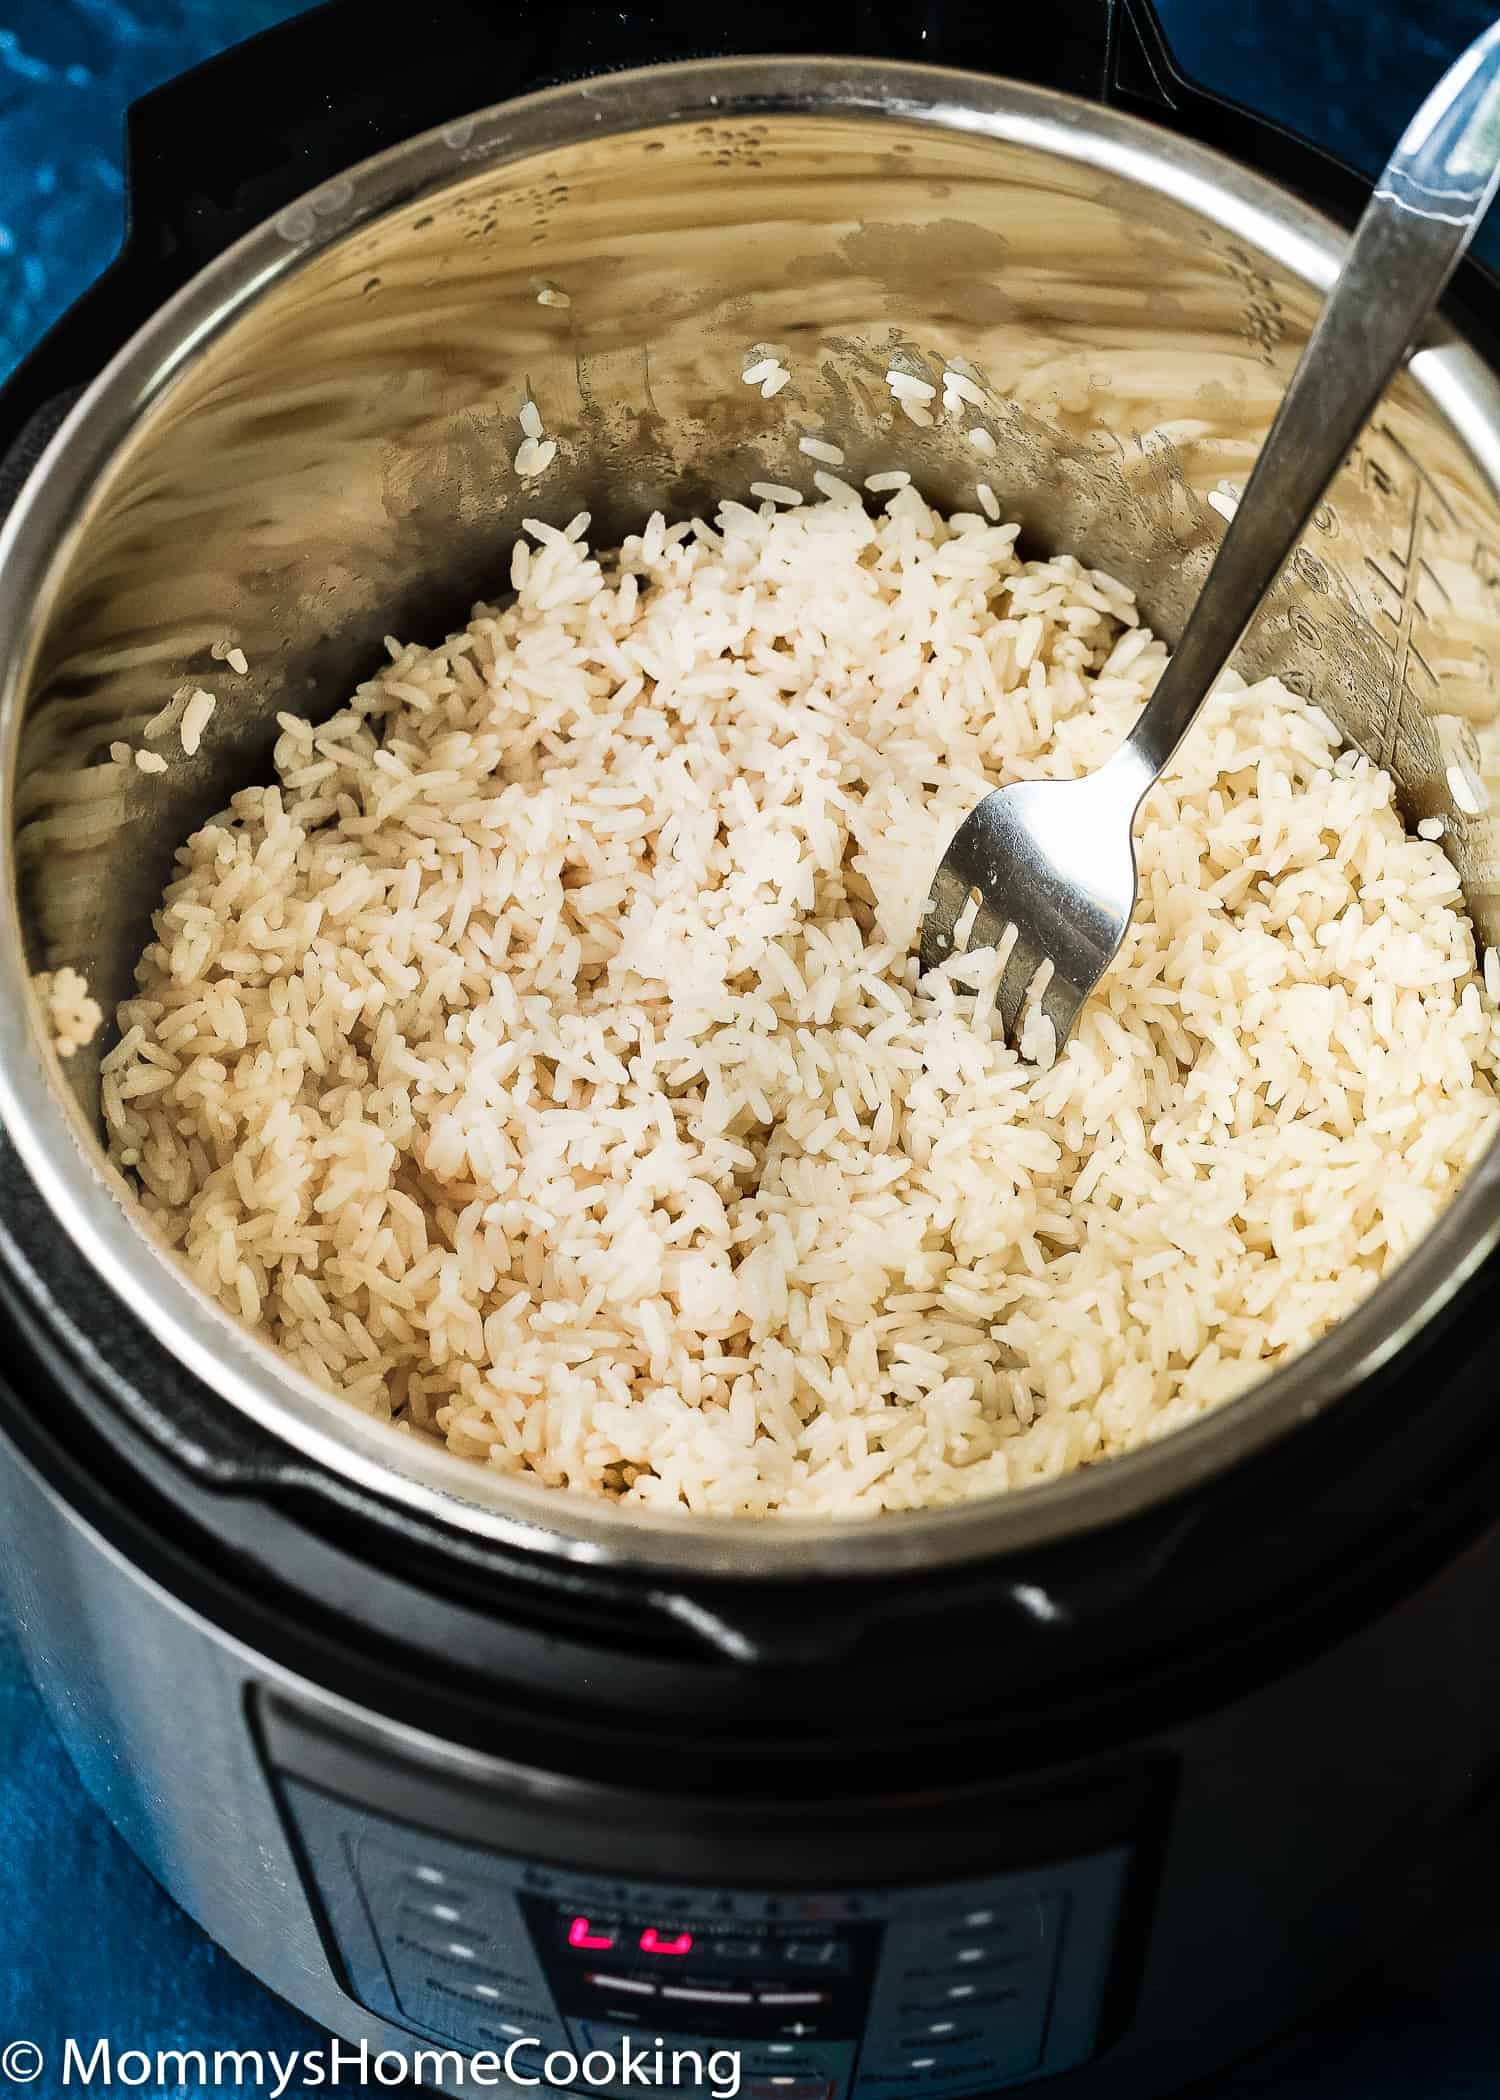 Youtube Cooking: Instant Pot Fluffy Rice